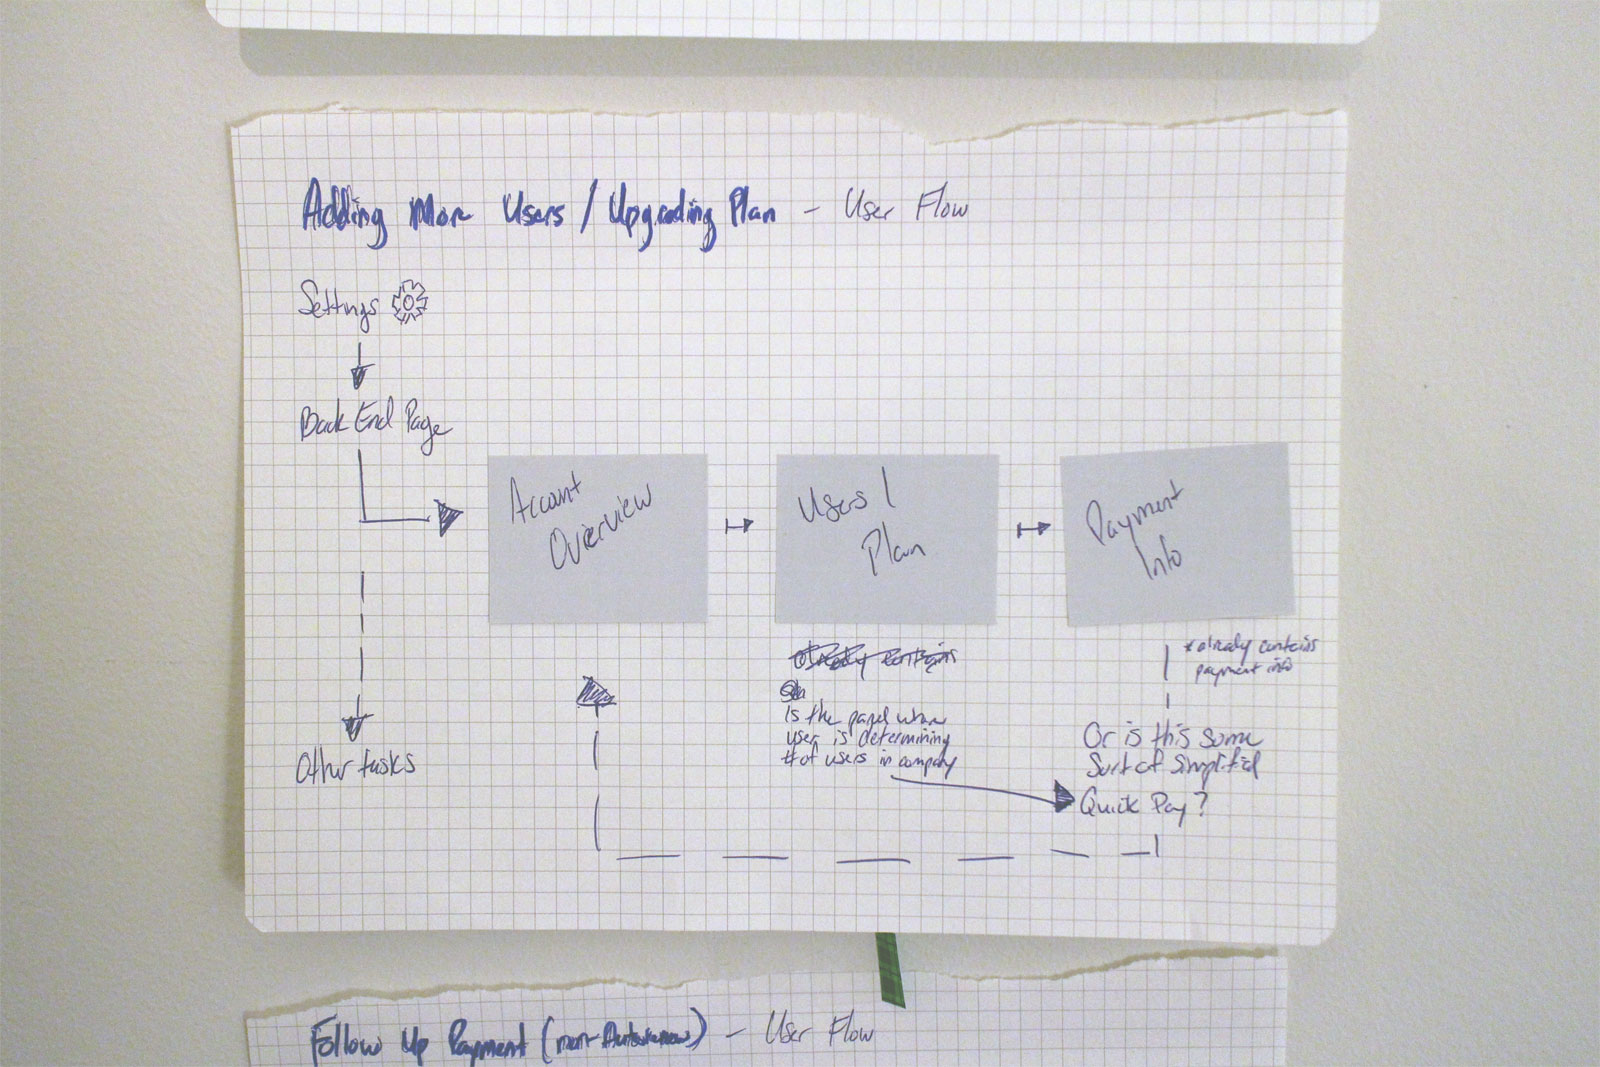 Adding More Users/Upgrading Plan User Flow